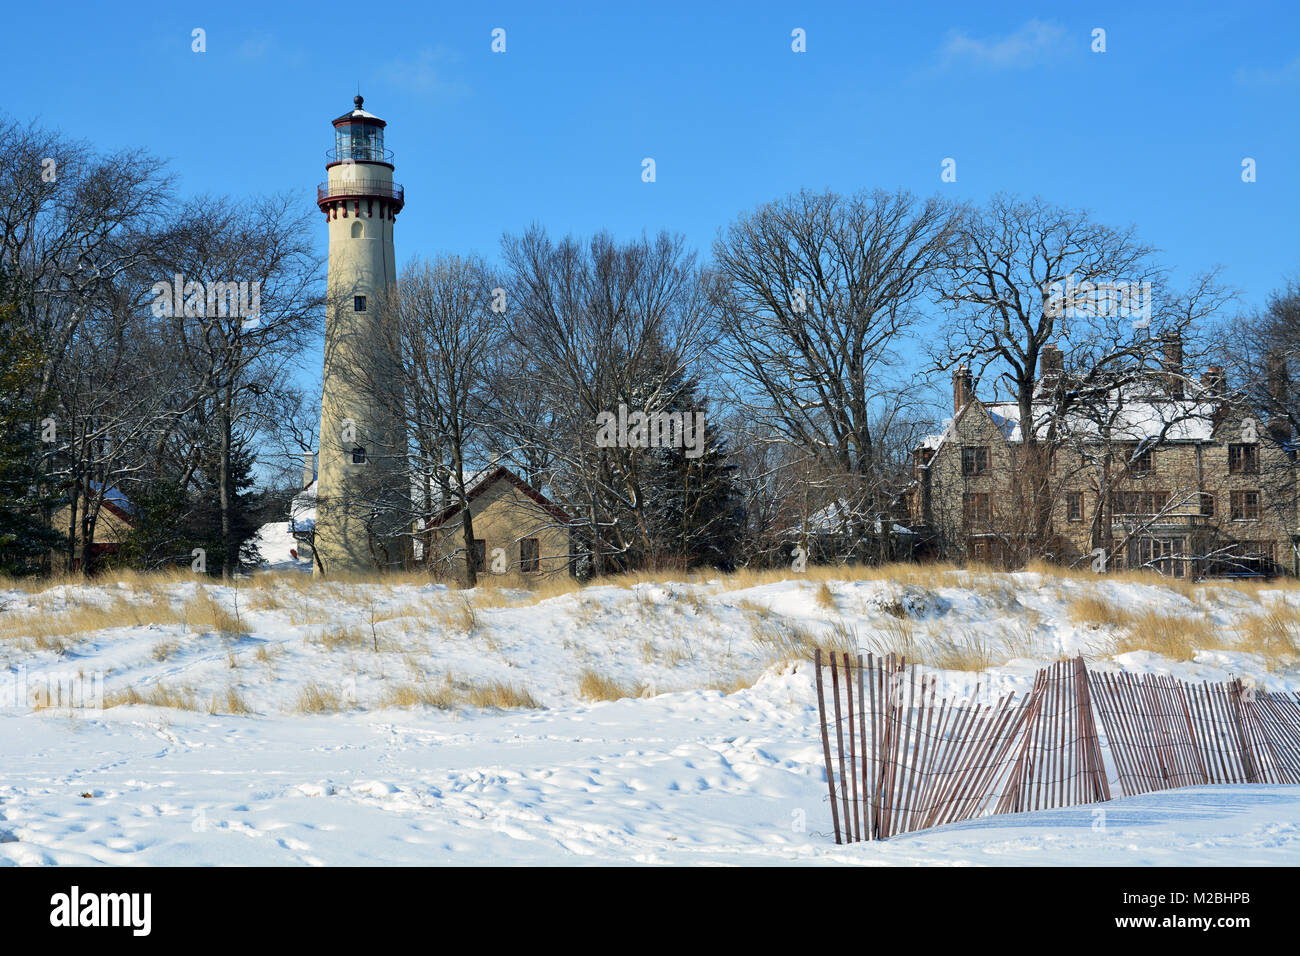 Snow covers the beach and dunes at Grosse Point where the lighthouse, completed in 1874, marks a shoal in Lake Michigan - Stock Image